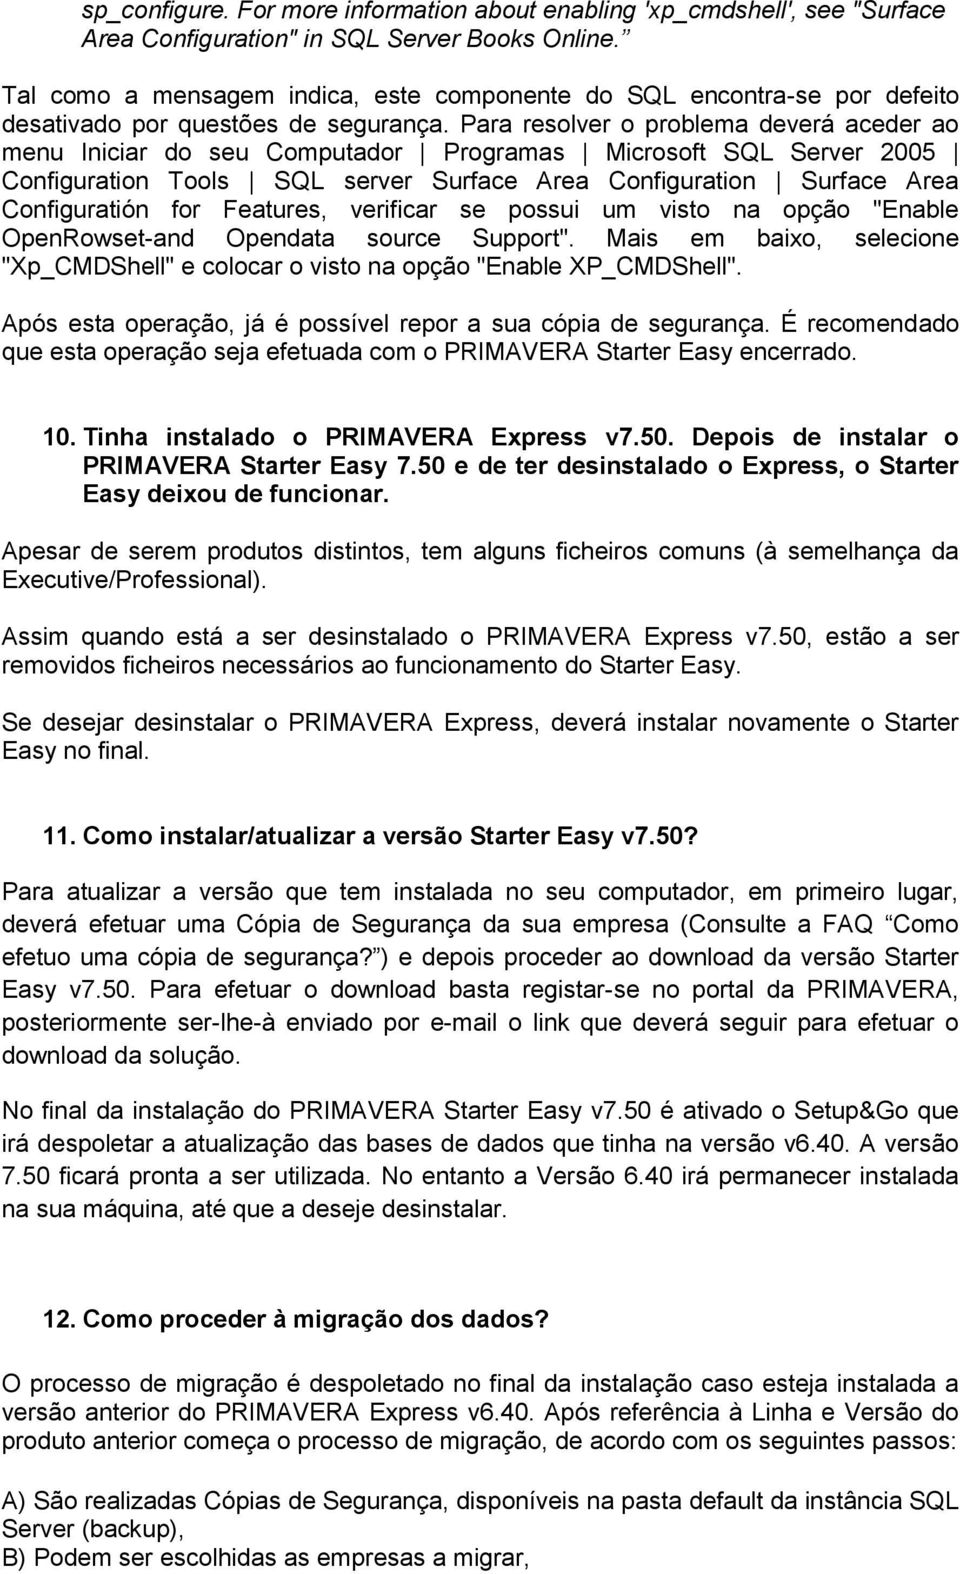 Para resolver o problema deverá aceder ao menu Iniciar do seu Computador Programas Microsoft SQL Server 2005 Configuration Tools SQL server Surface Area Configuration Surface Area Configuratión for